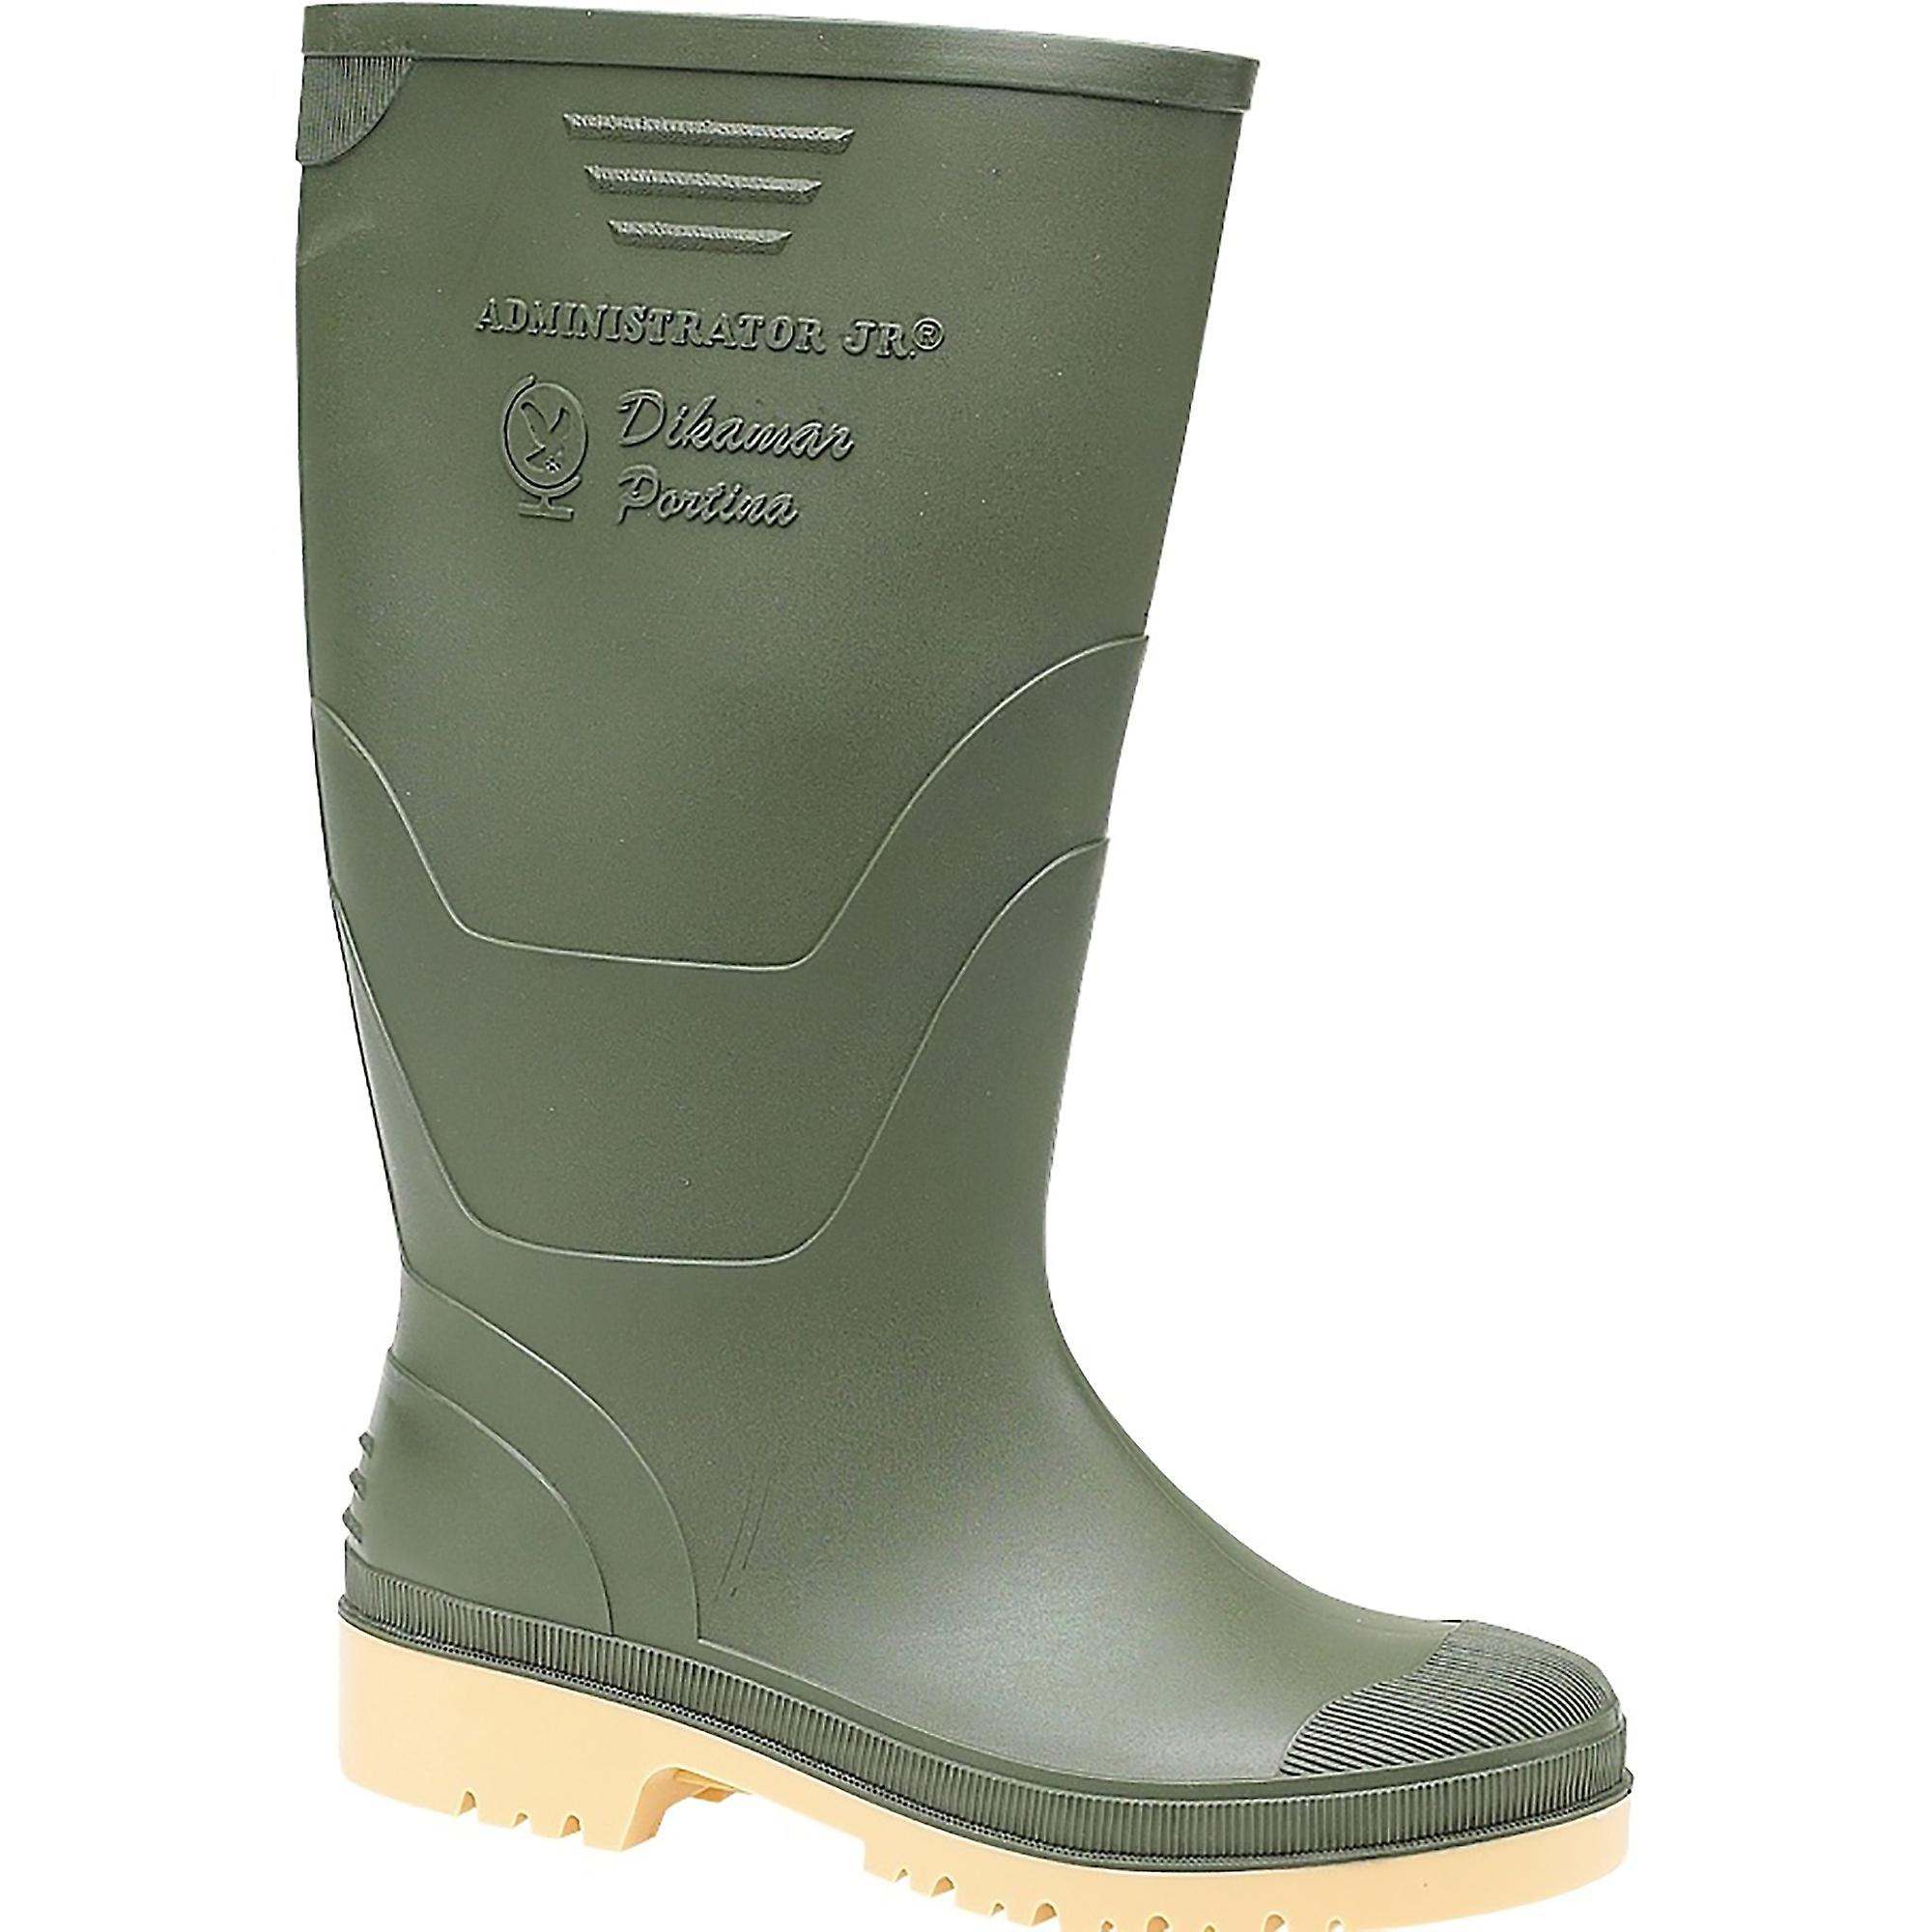 Dikimar JNR Administrator Childrens Wellingtons / Boys Boots / Girls Boots